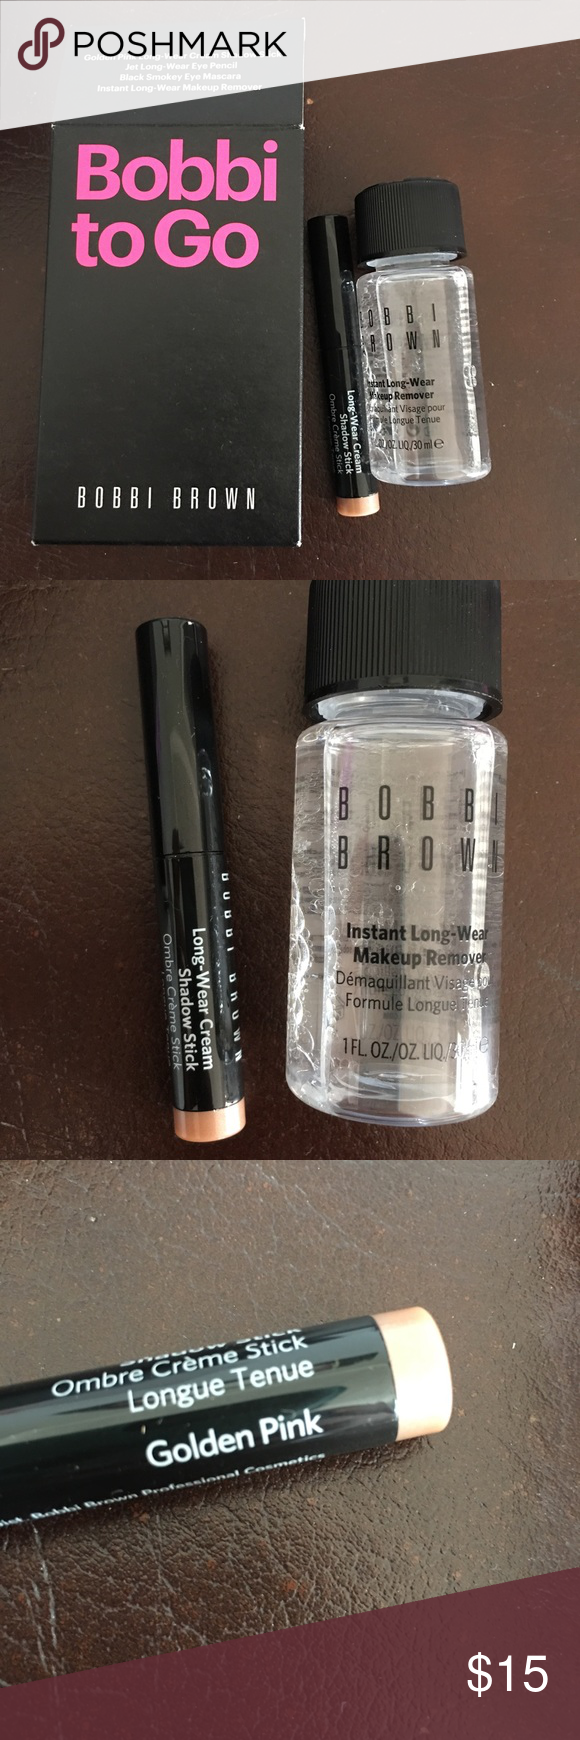 Bobbi Brown 2 piece bundle Golden Pink Long Wear Cream Shadow stick and Instant Long Wear Makeup removed (1 fl oz) - bought on posh but just needed the mascara and eye liner so reposting the rest- NIB- unused- I removed what I wanted. Bobbi Brown Makeup